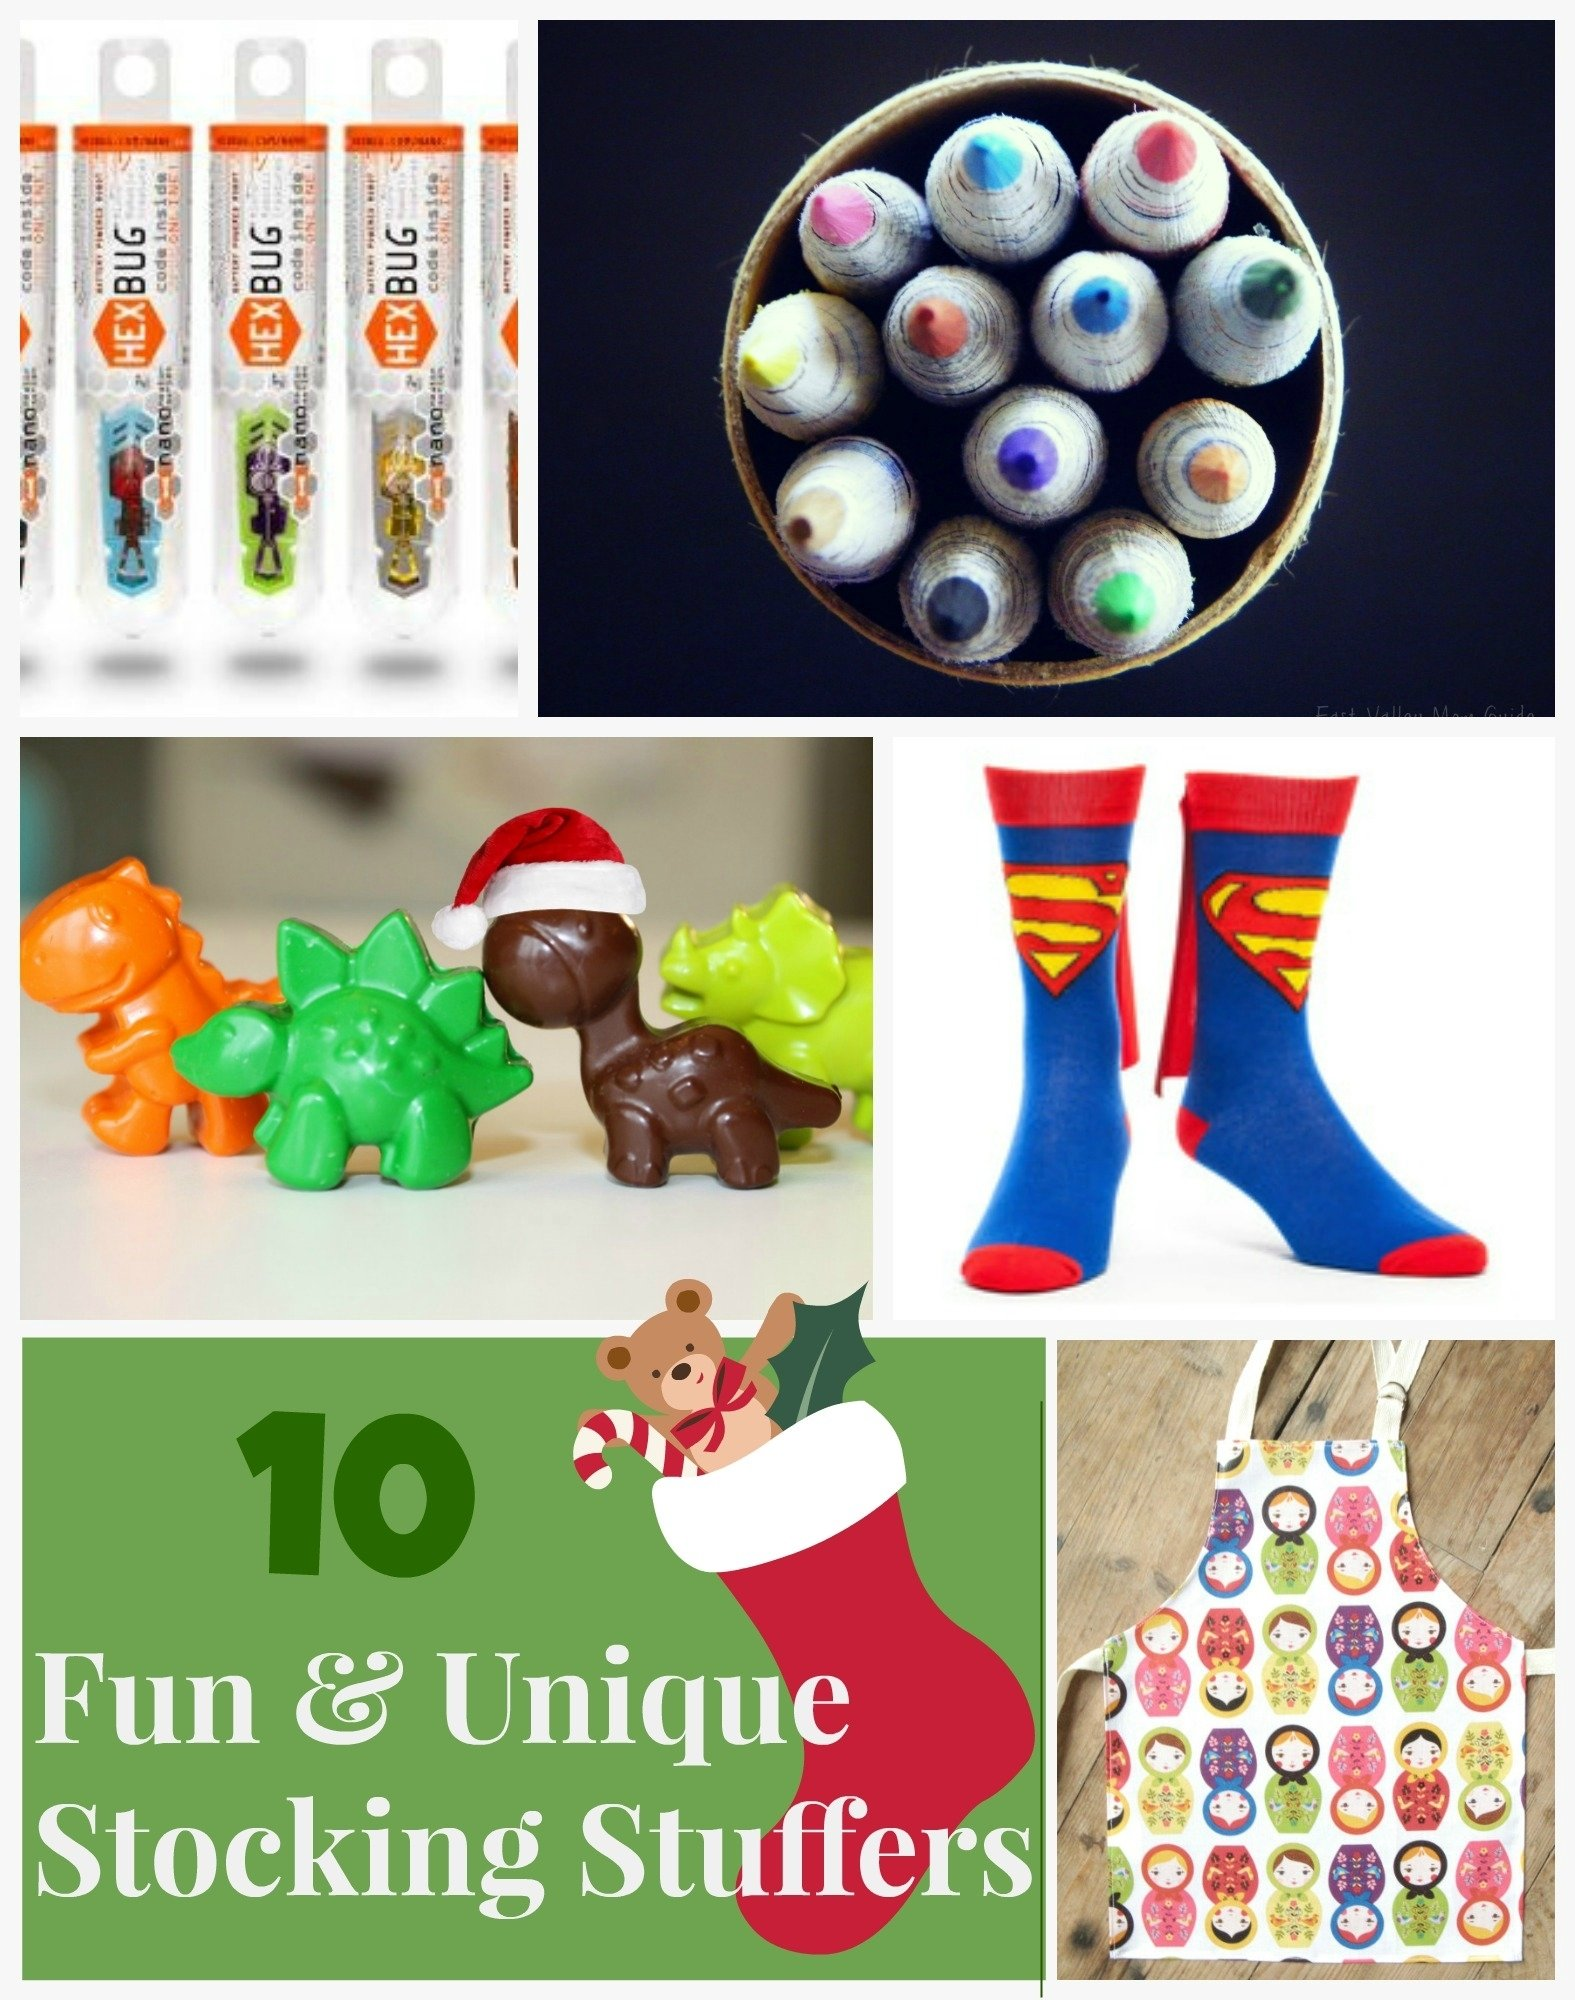 10 Great Christmas Stocking Stuffer Ideas For Adults 10 fun and unique stocking stuffer ideas 1